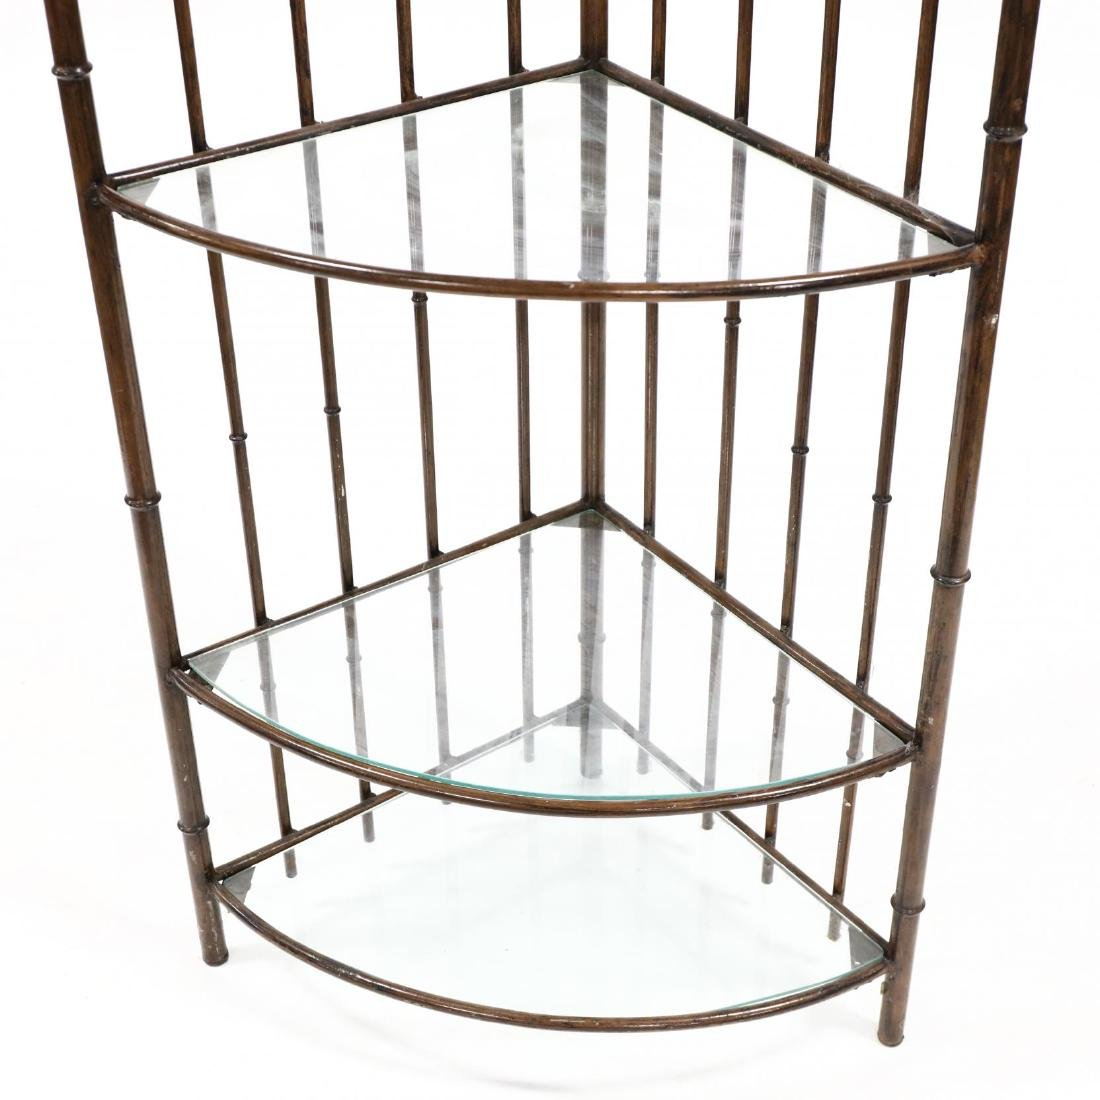 Faux Bamboo Corner Etagere - 2